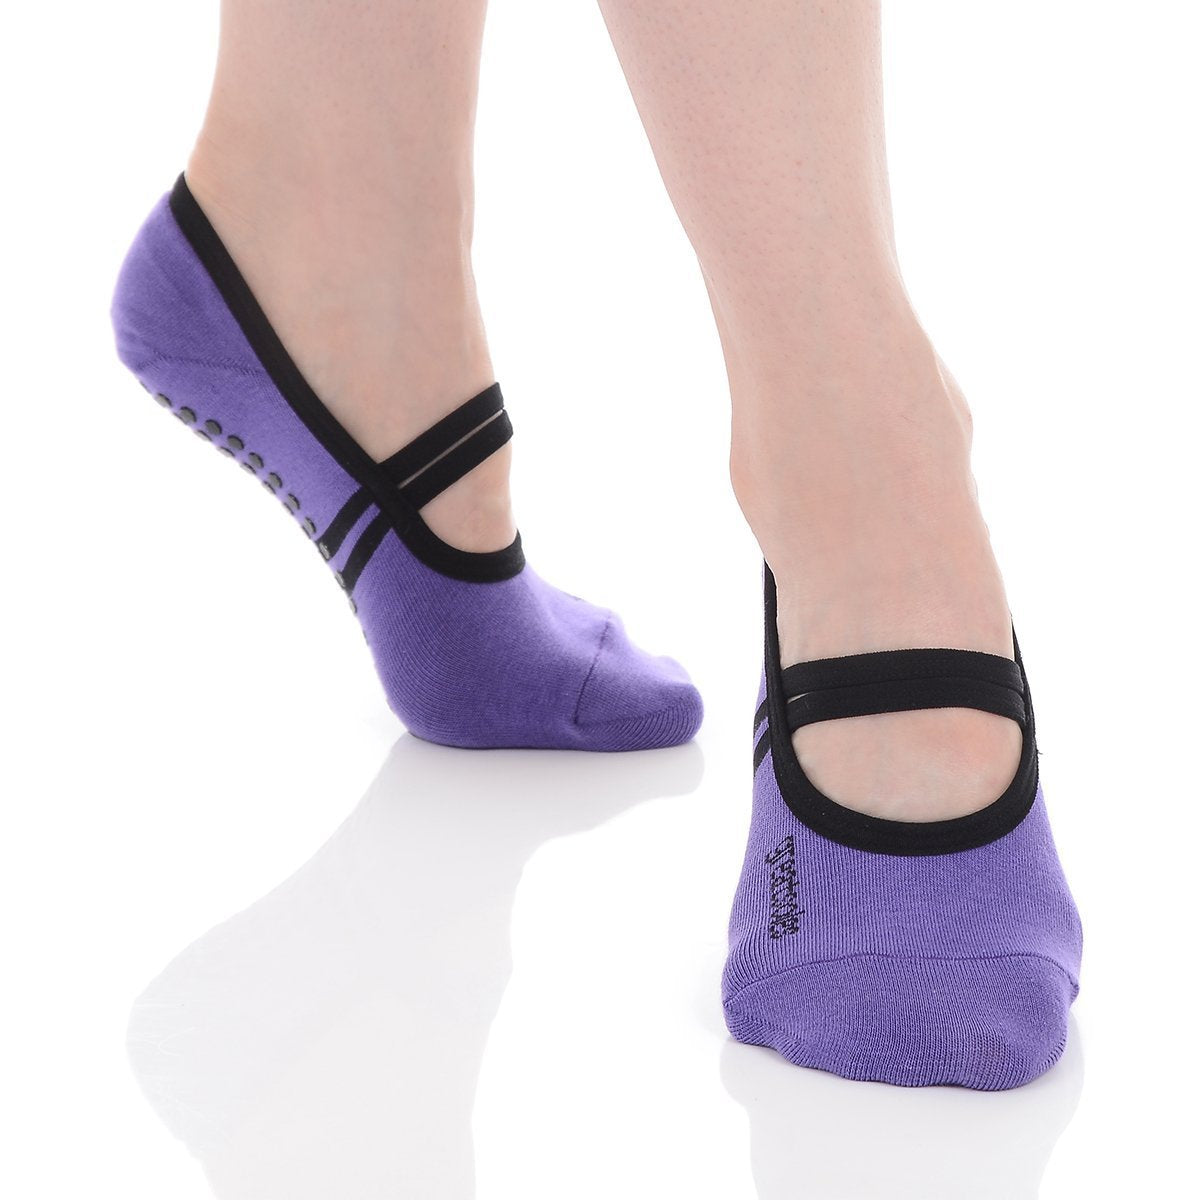 Ballet Grip Sock - Violet/Black